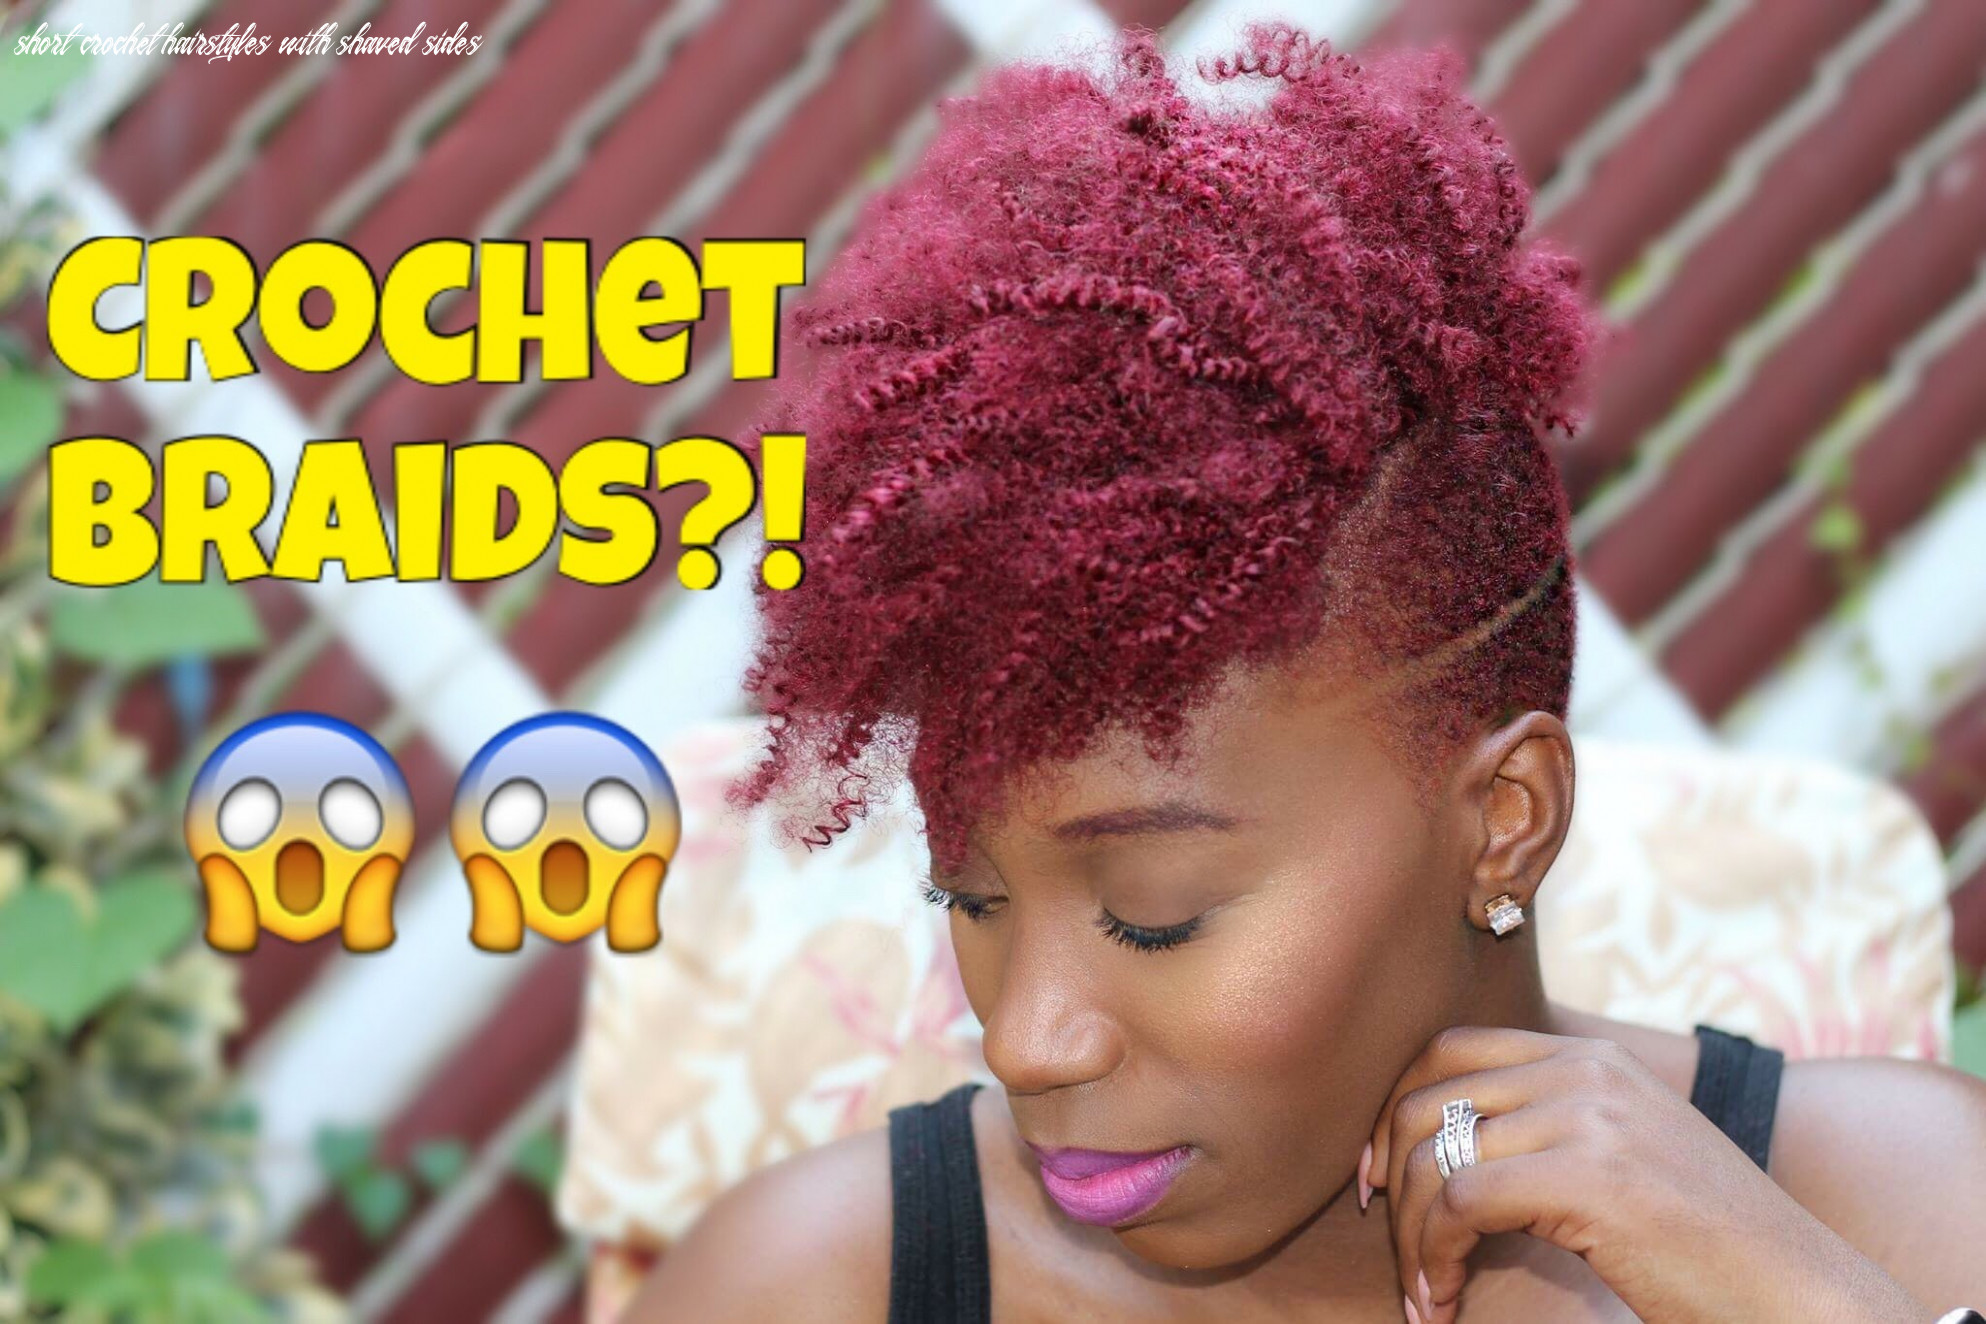 Crochet hairstyles with the sides shaved off - Hairstyles for Women